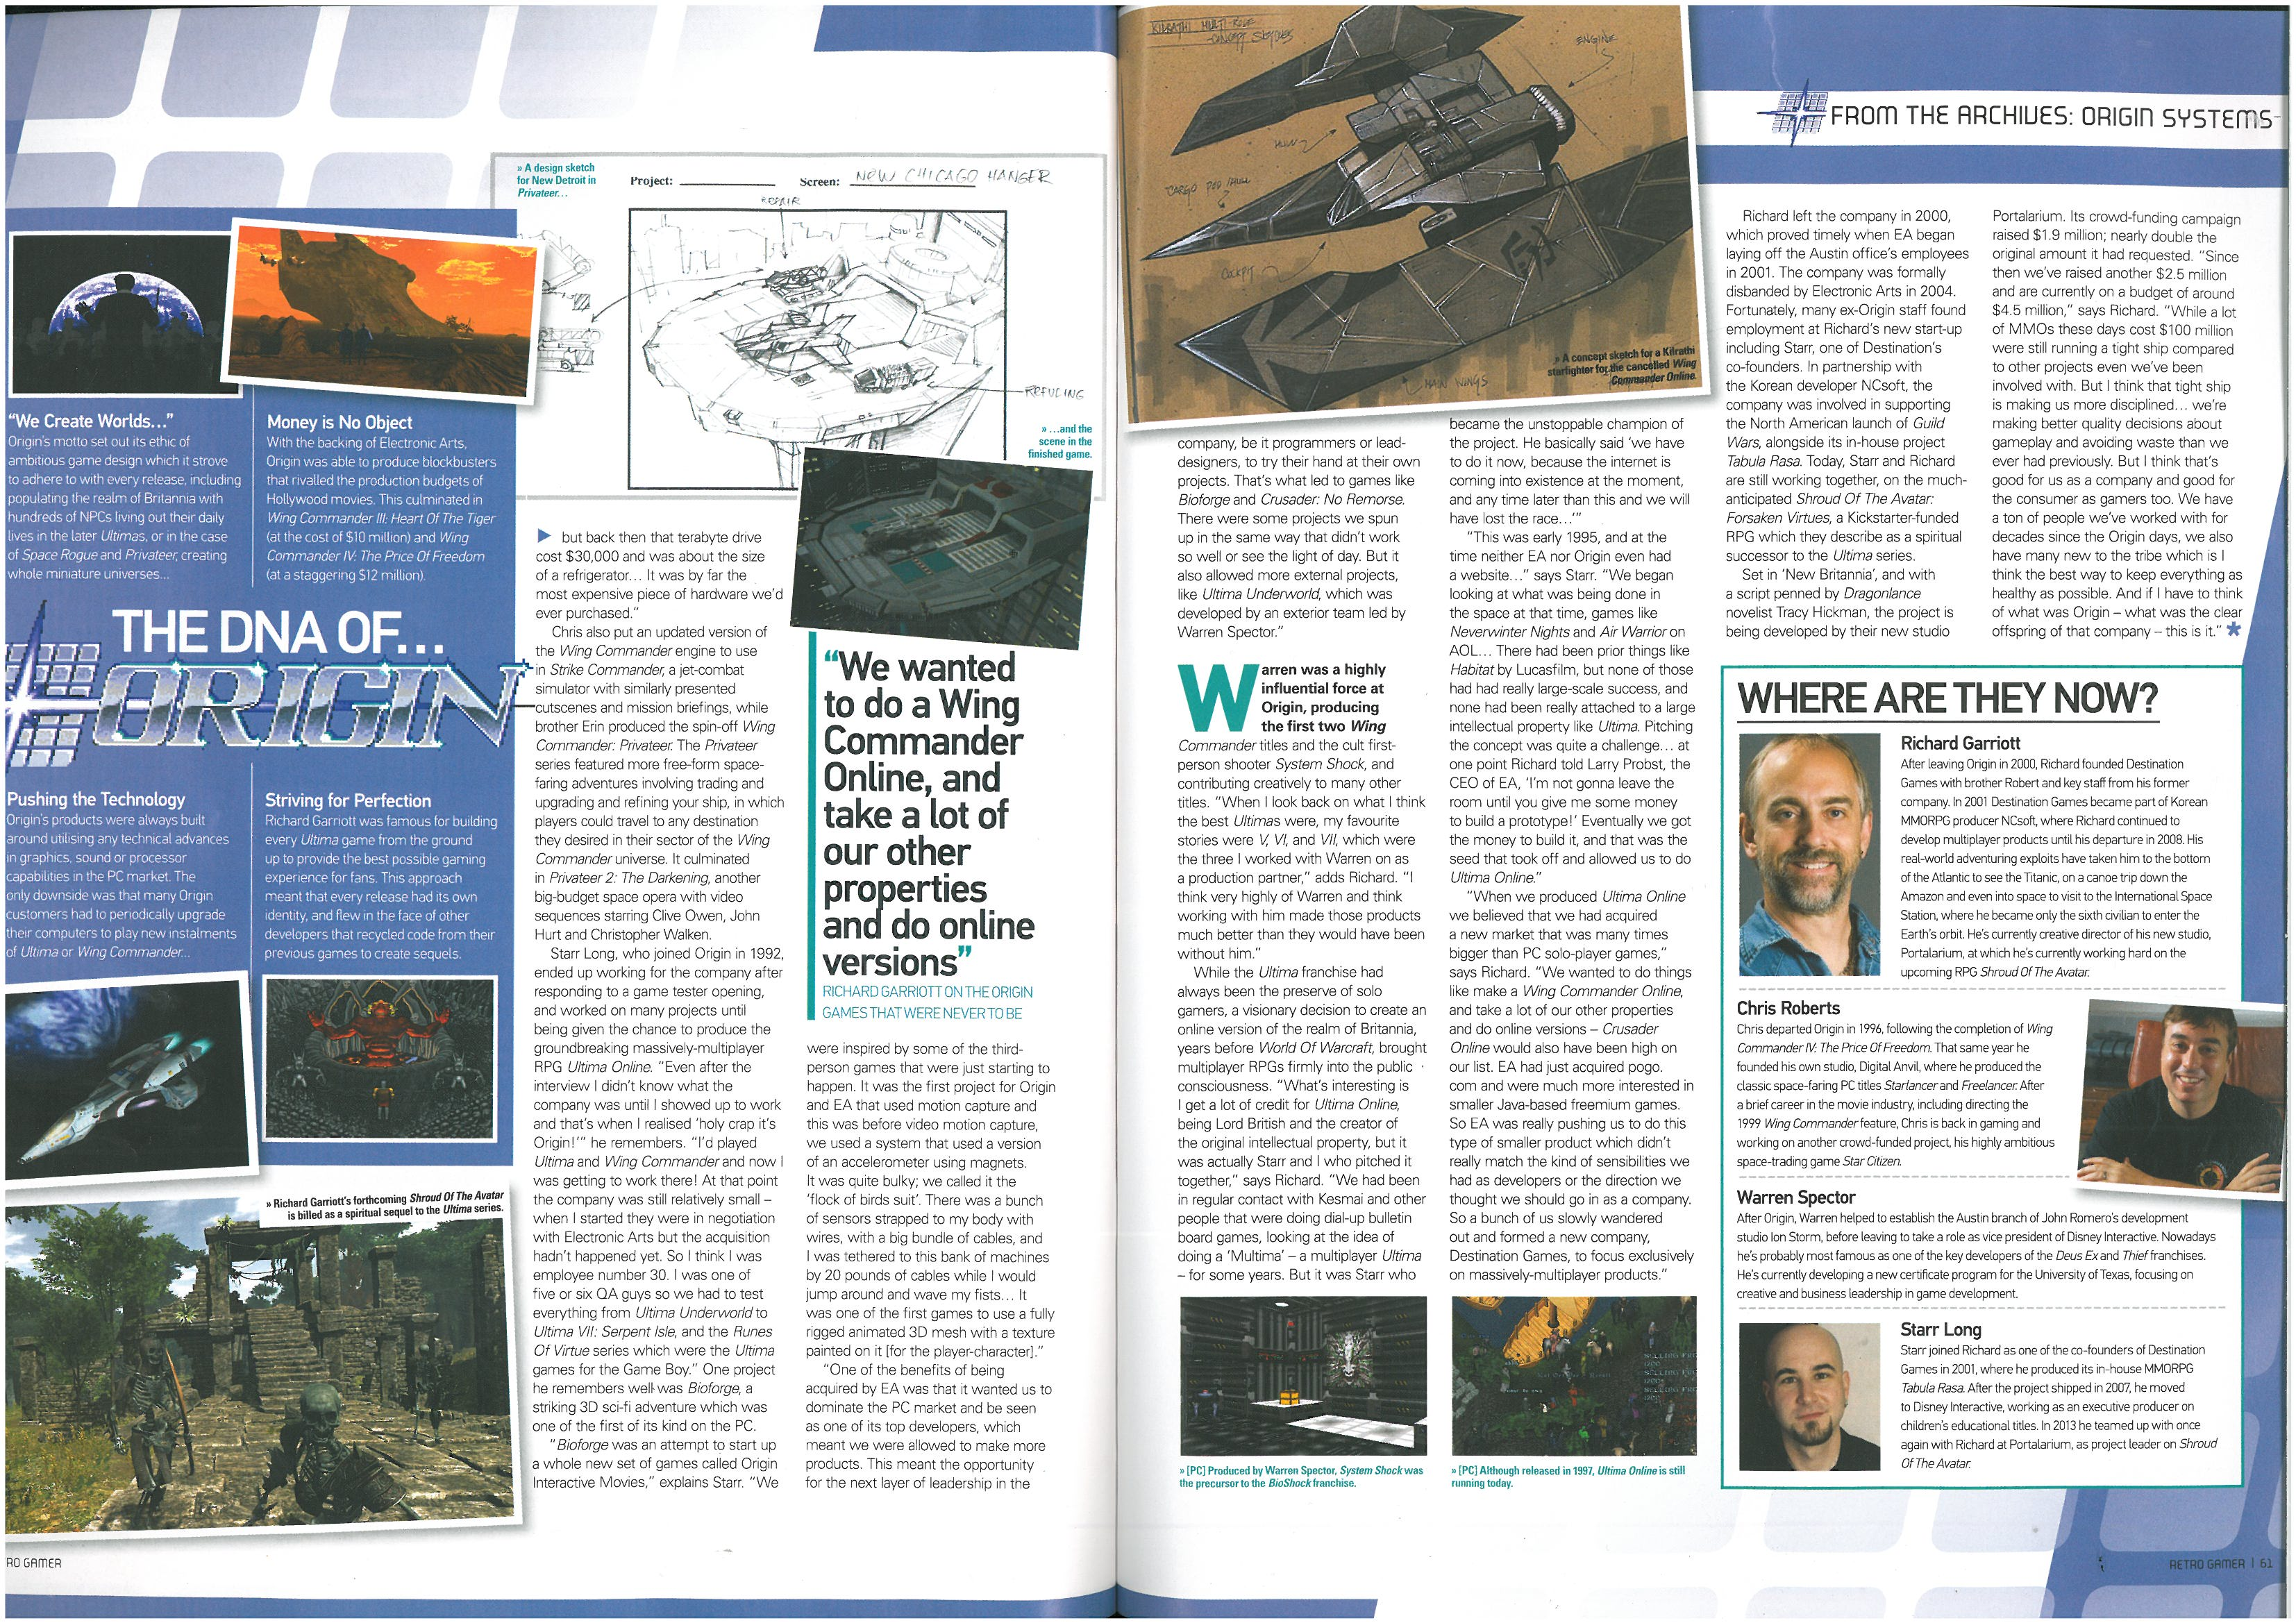 Retro Gamer Tells The Story Of OSI - Wing Commander CIC